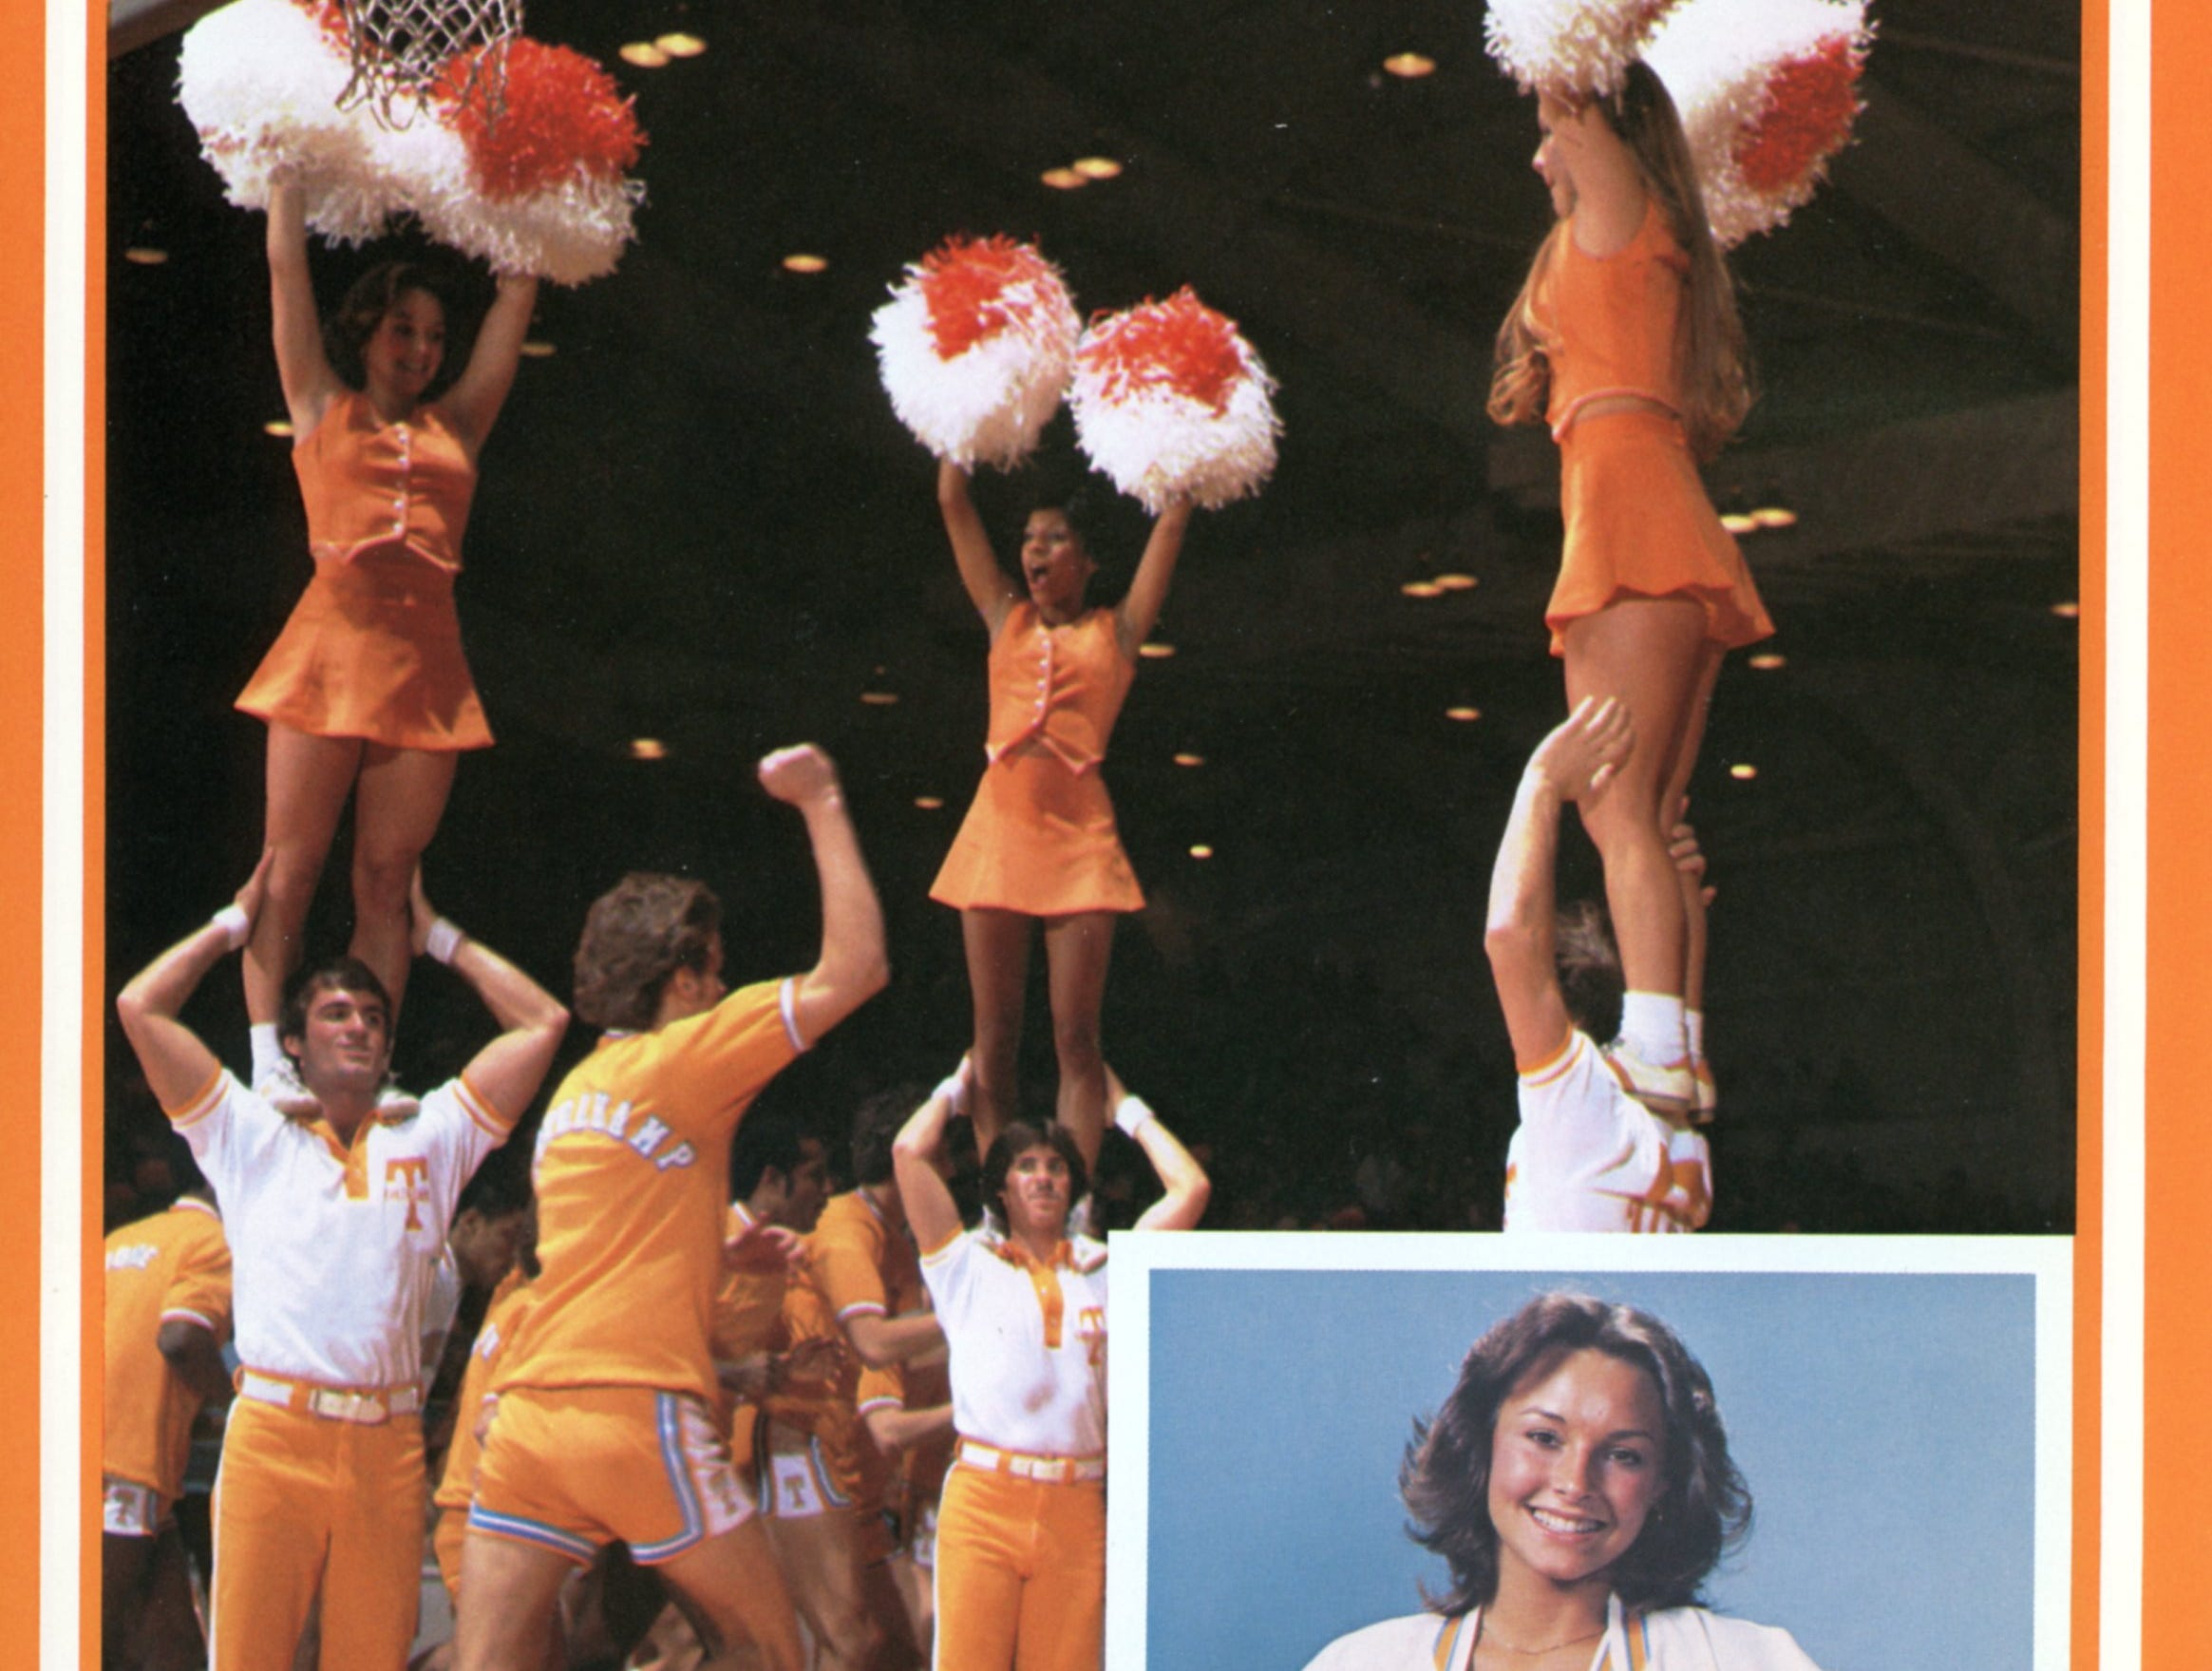 A page from the 1979-1980 University of Tennessee basketball guide features the cheerleaders and Angie Troutman (inset), who was named an All-America cheerleader.